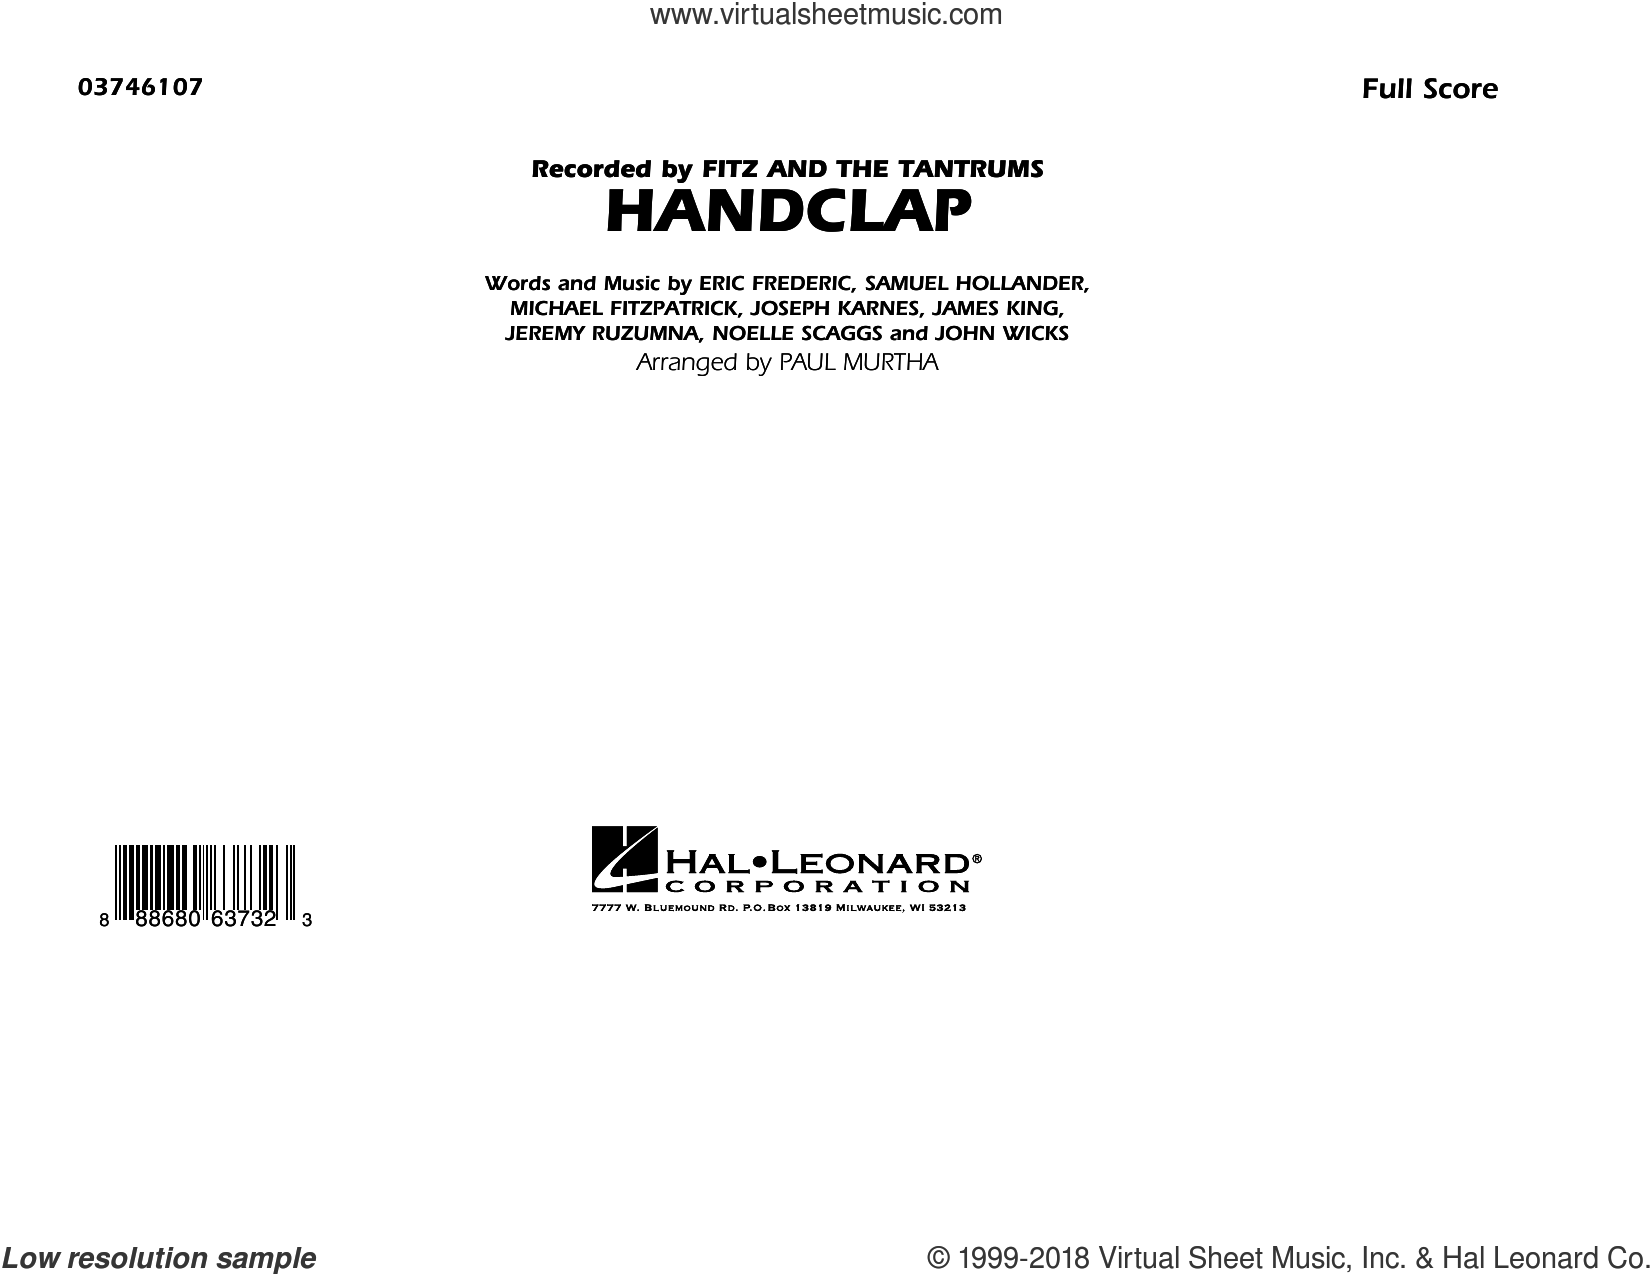 Murtha - HandClap sheet music (complete collection) for marching band